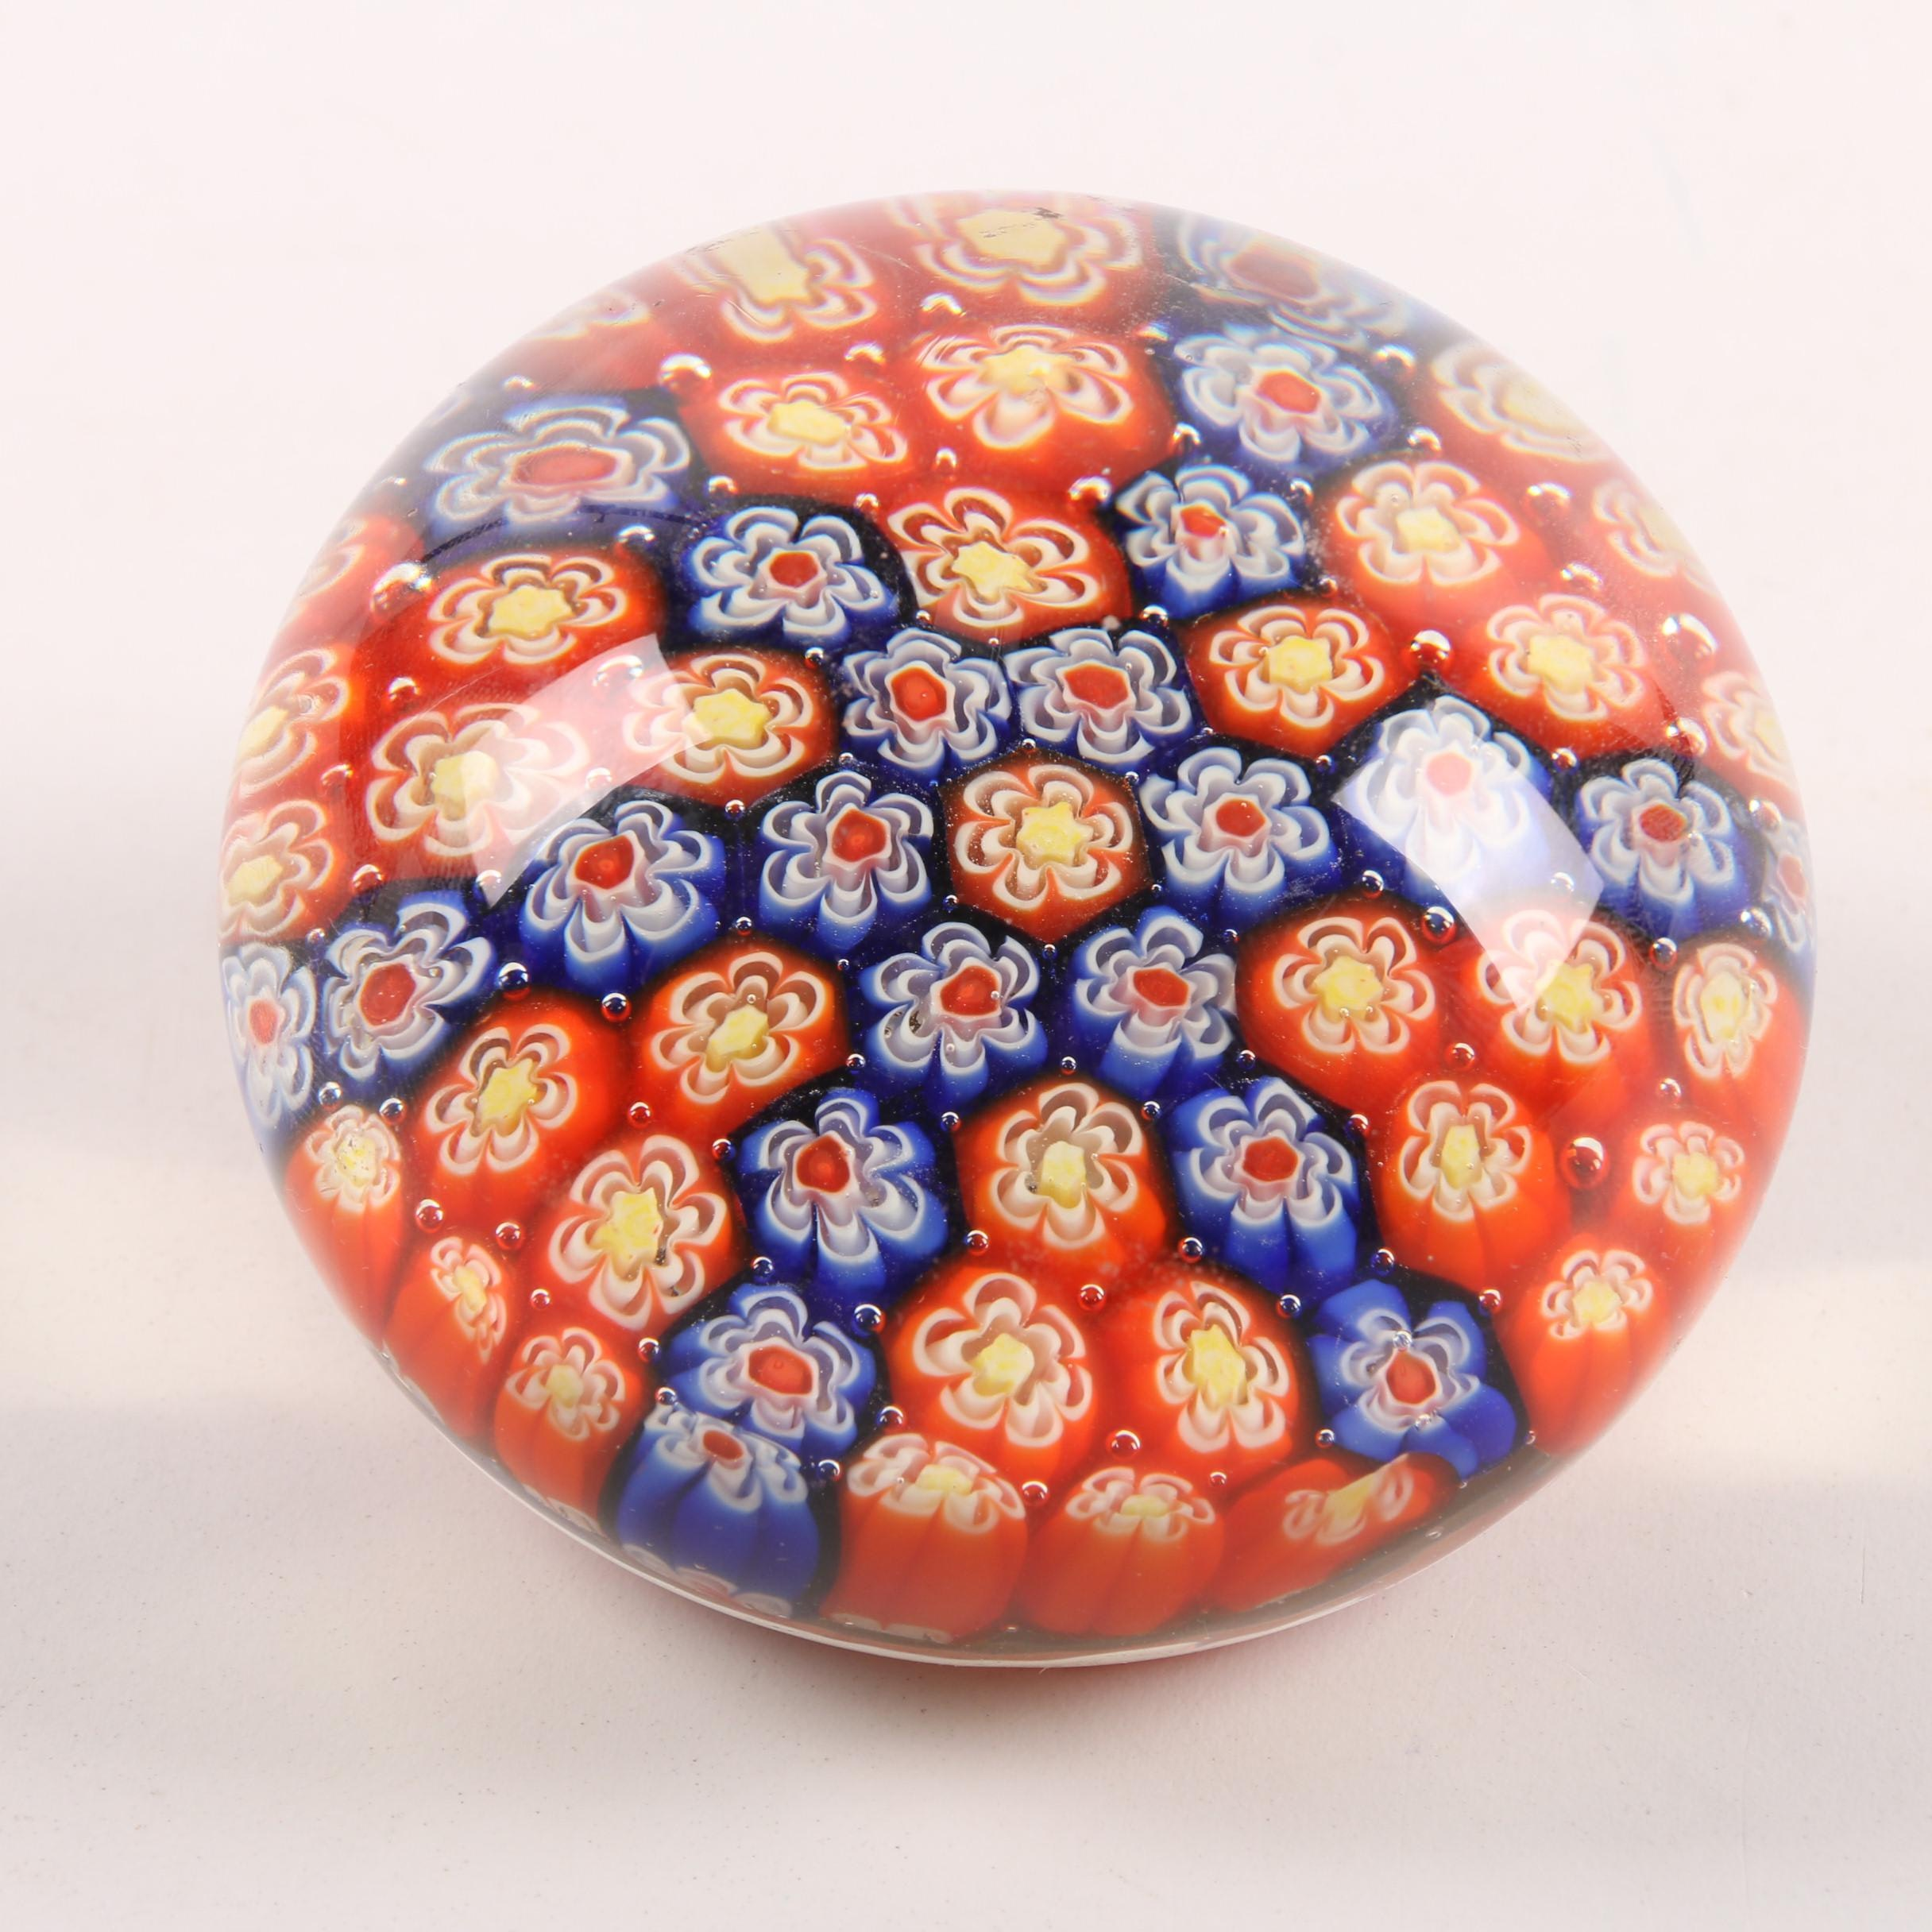 Silvestri Millefiori Art Glass Paperweight